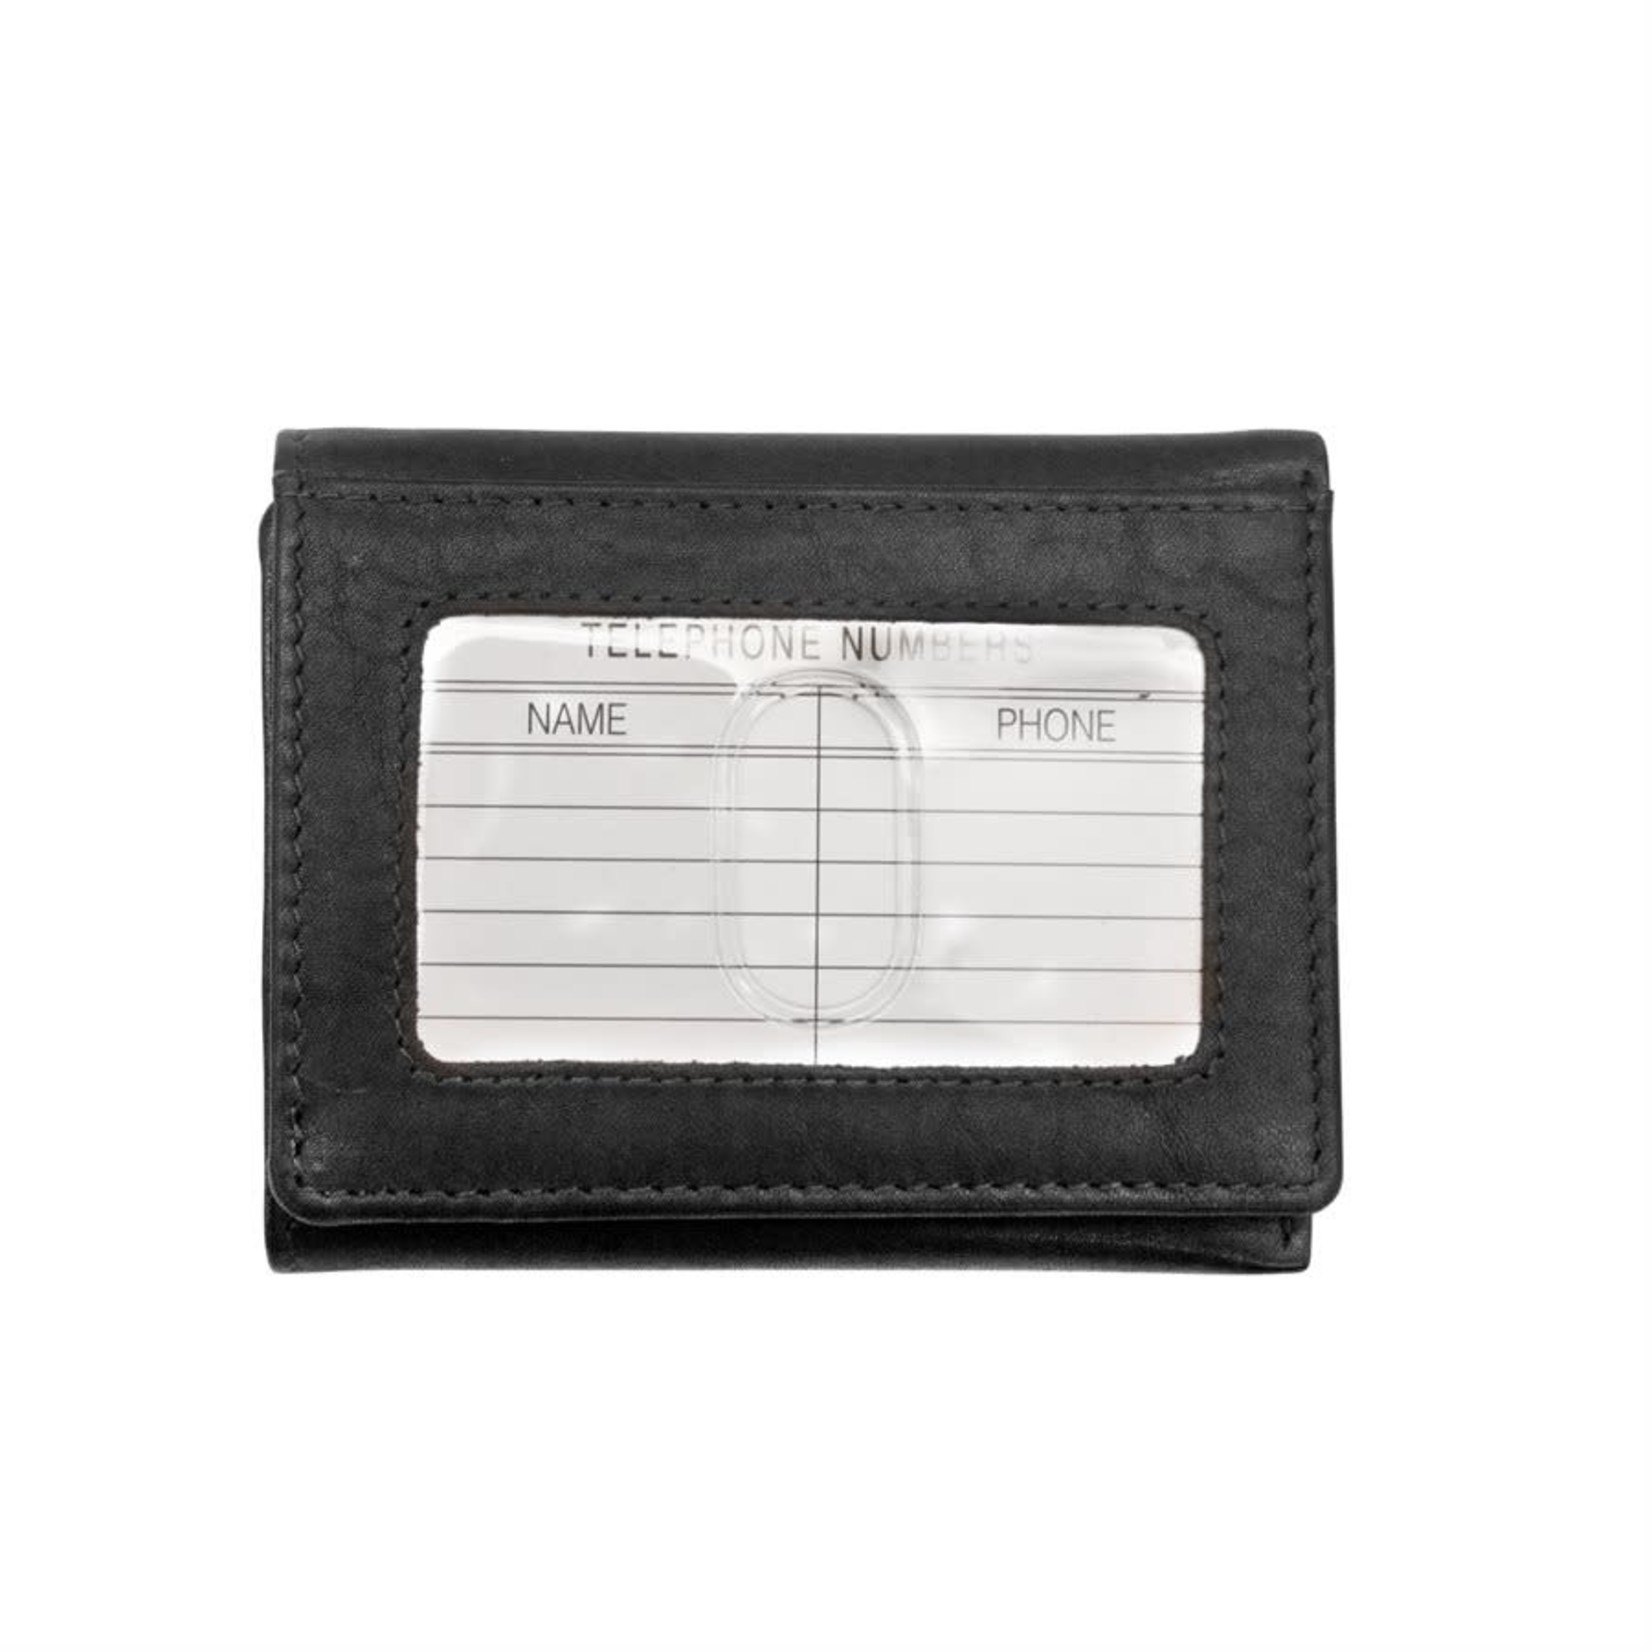 Leather Handbags and Accessories 7130 Black - RFID Trifold Wallet